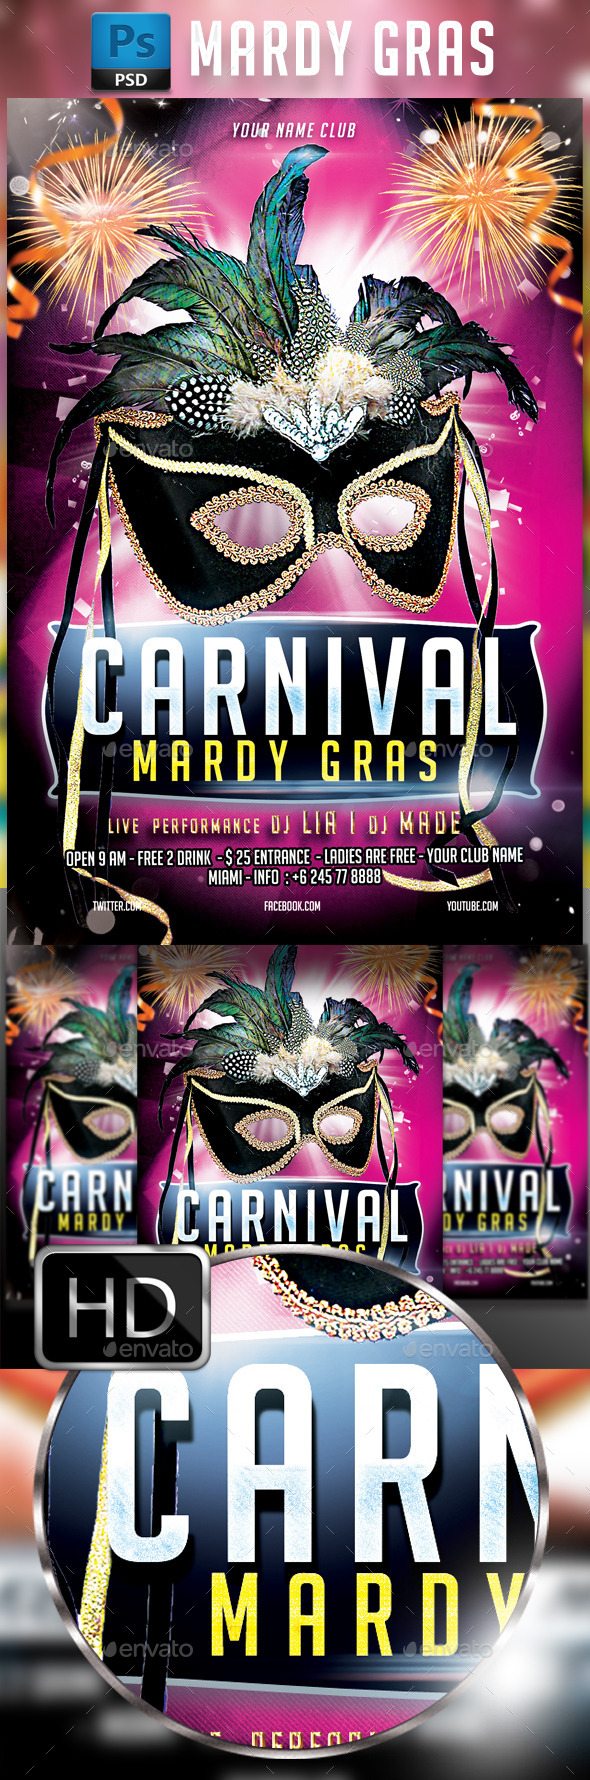 Mardy Gras - Clubs & Parties Events